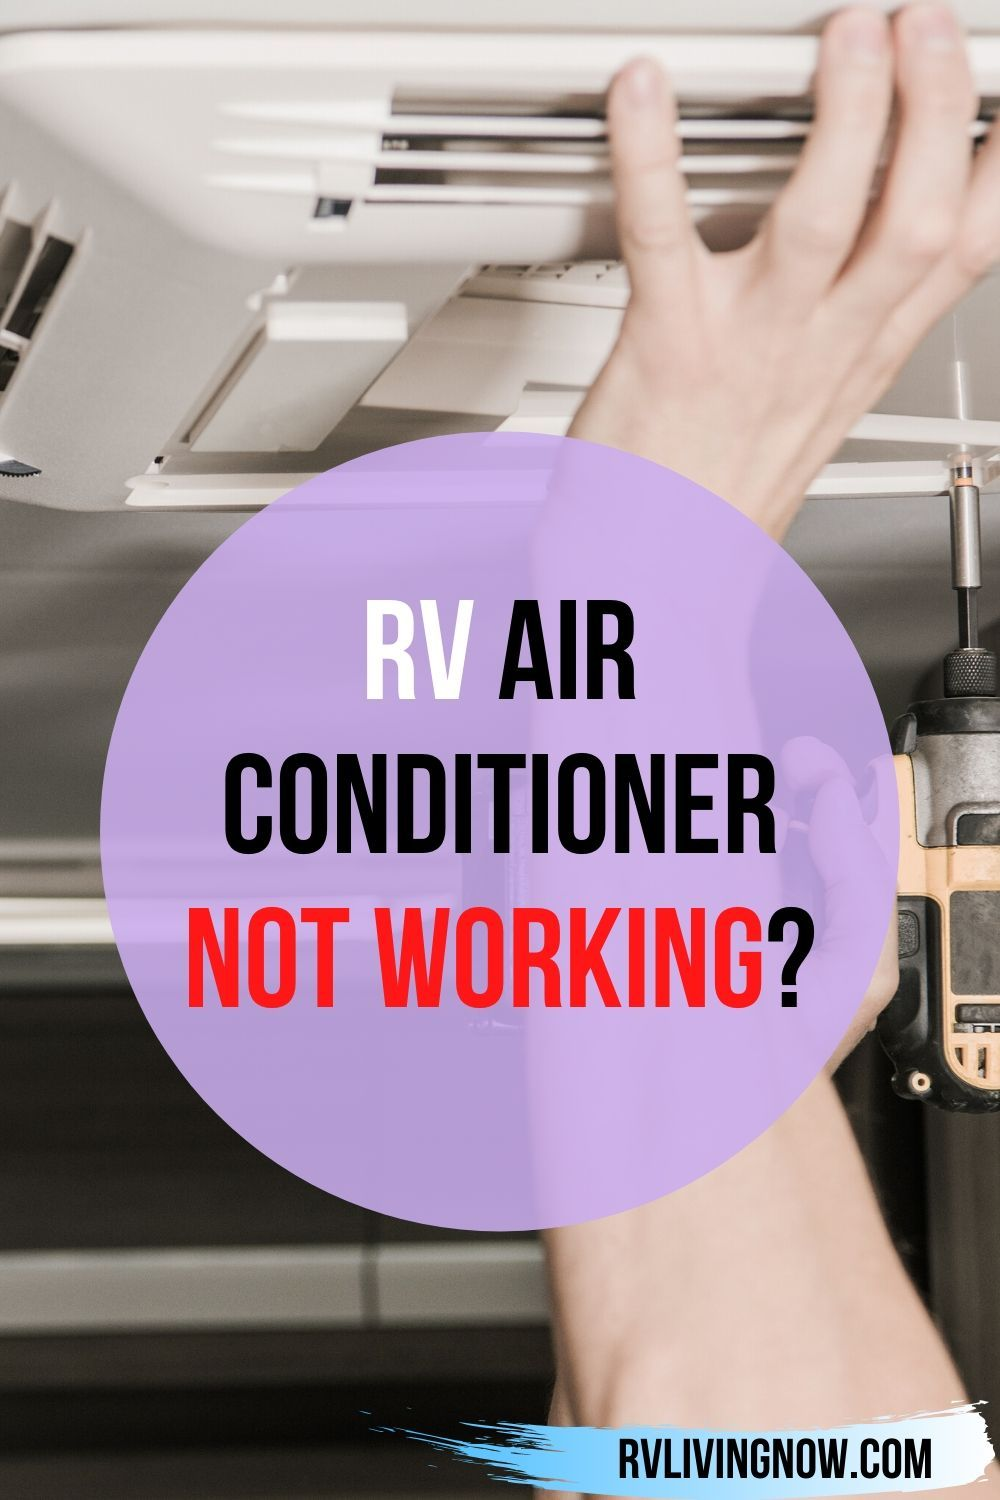 Dometic RV Air Conditioner Troubleshooting(Not working